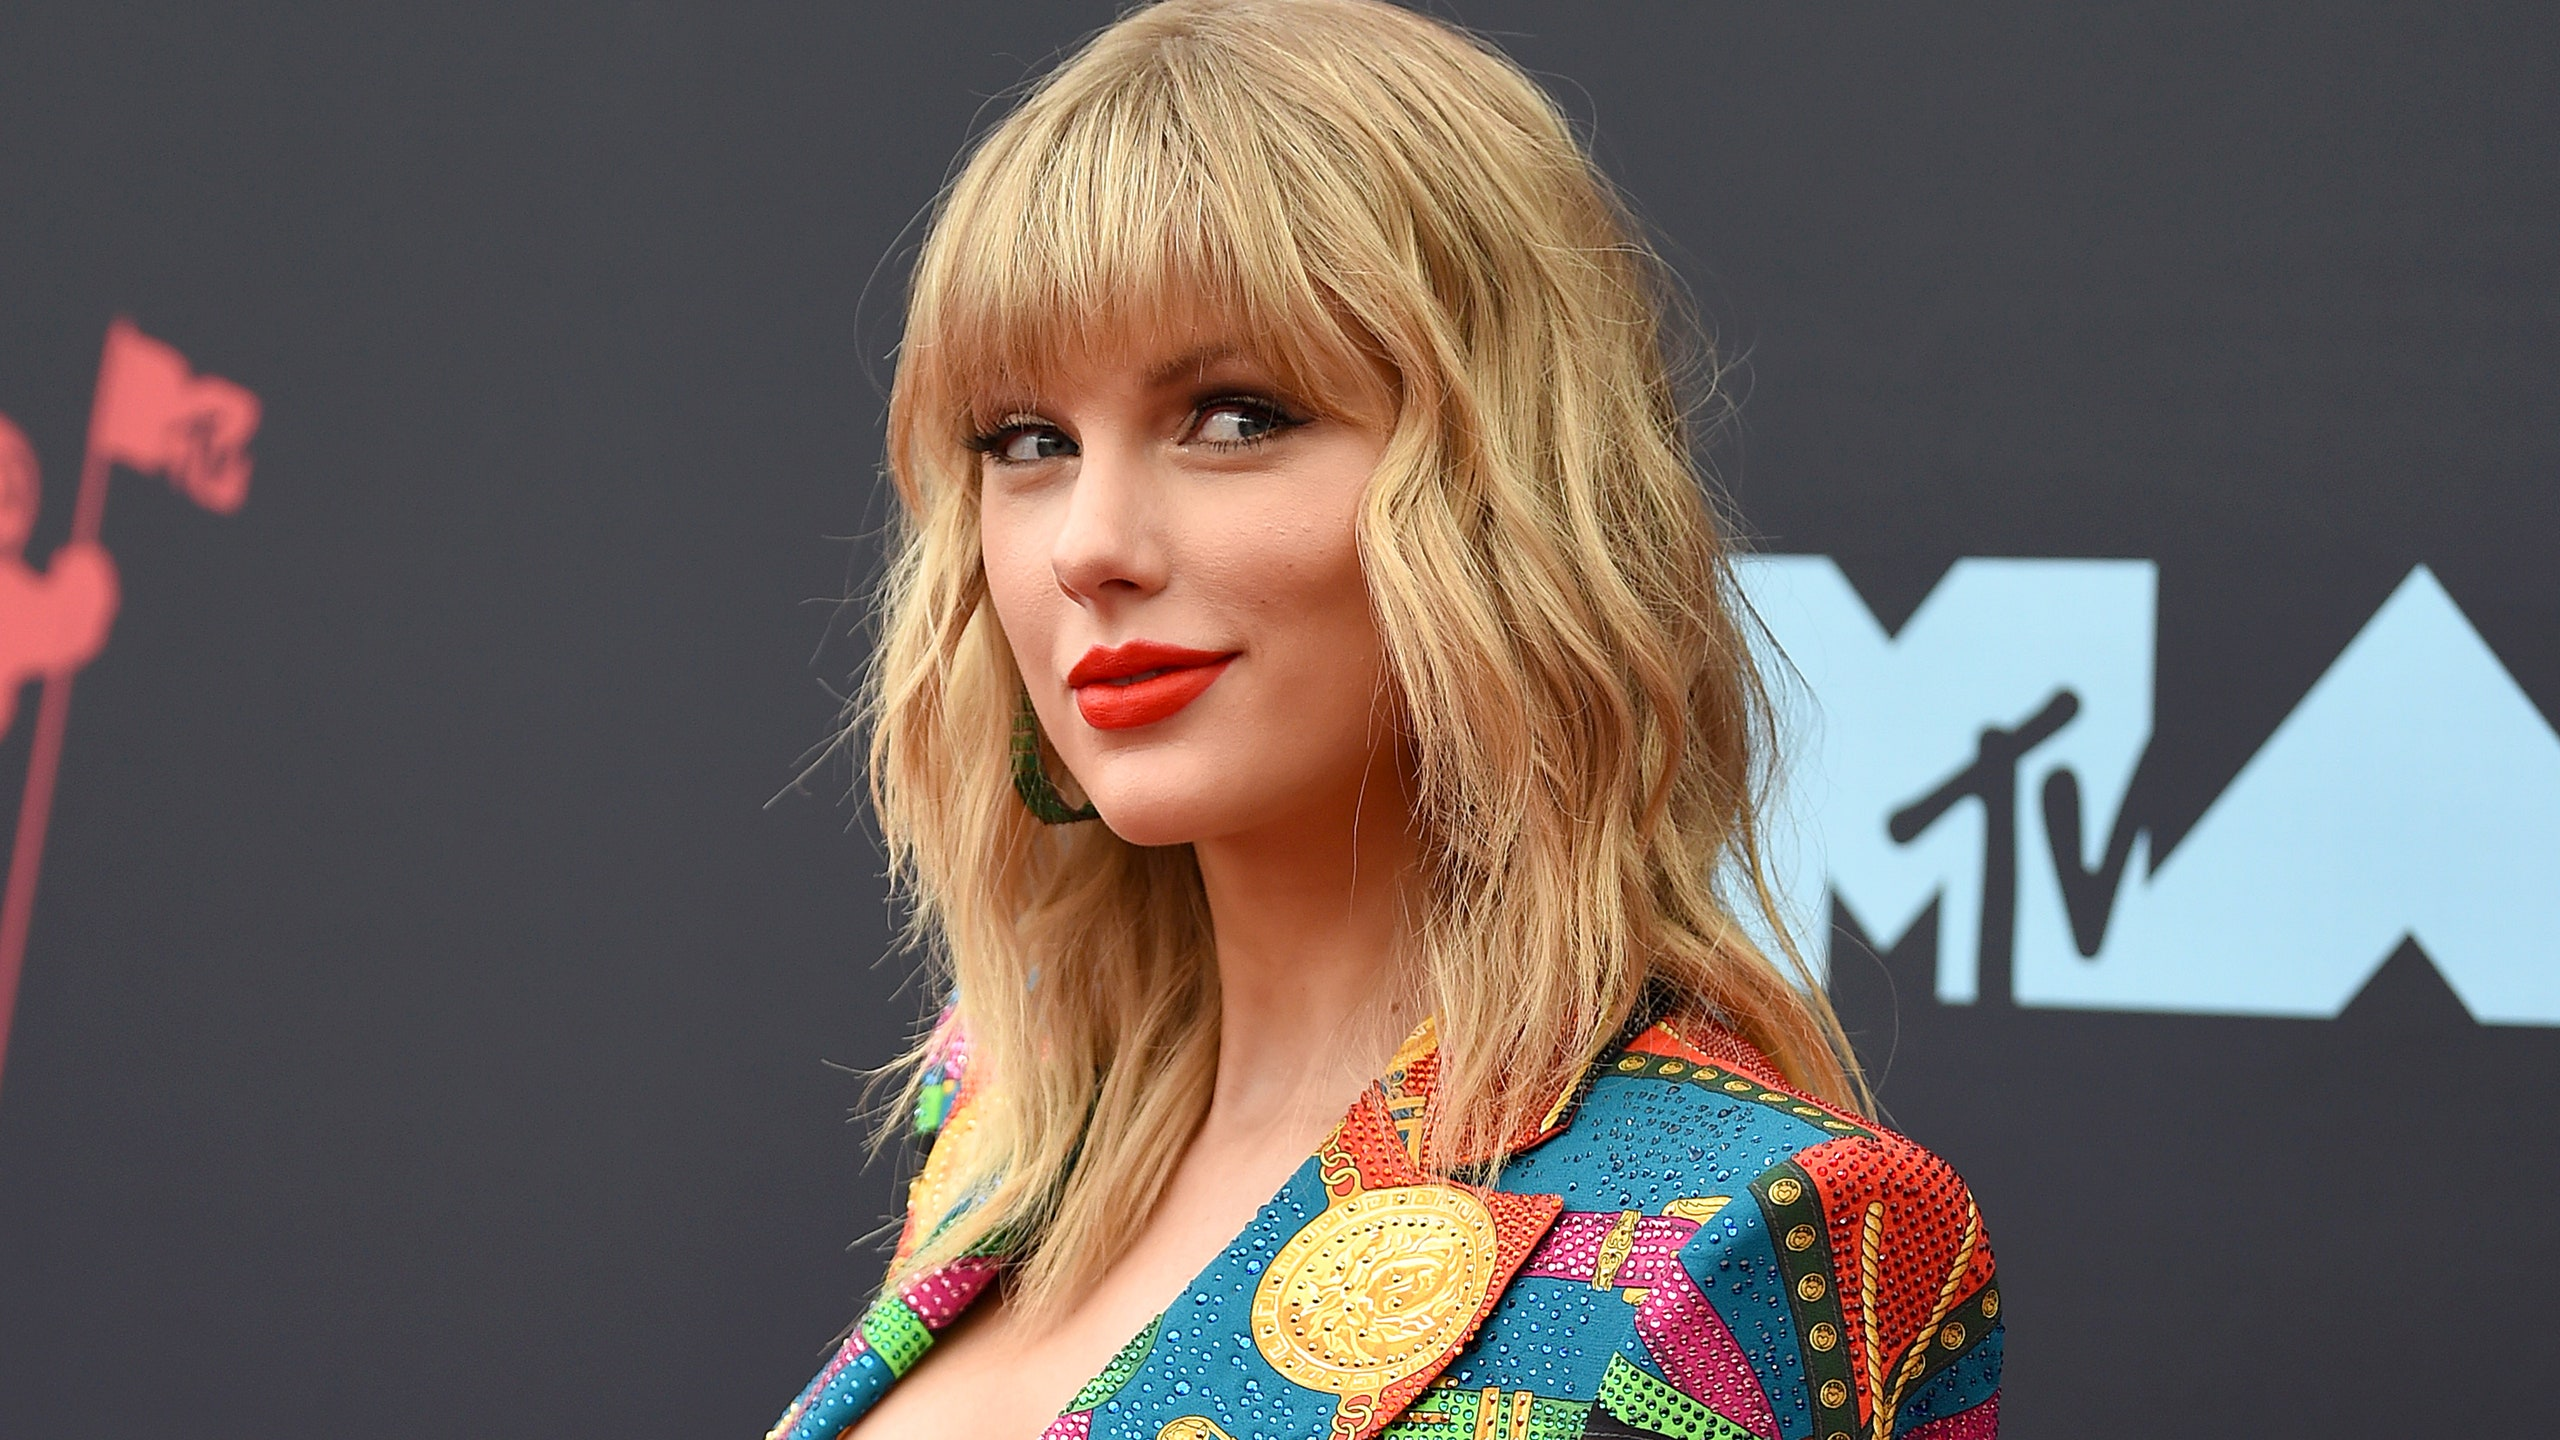 This Taylor Swift Fan Theory Suggests Folklore Is One Complete 2560x1440